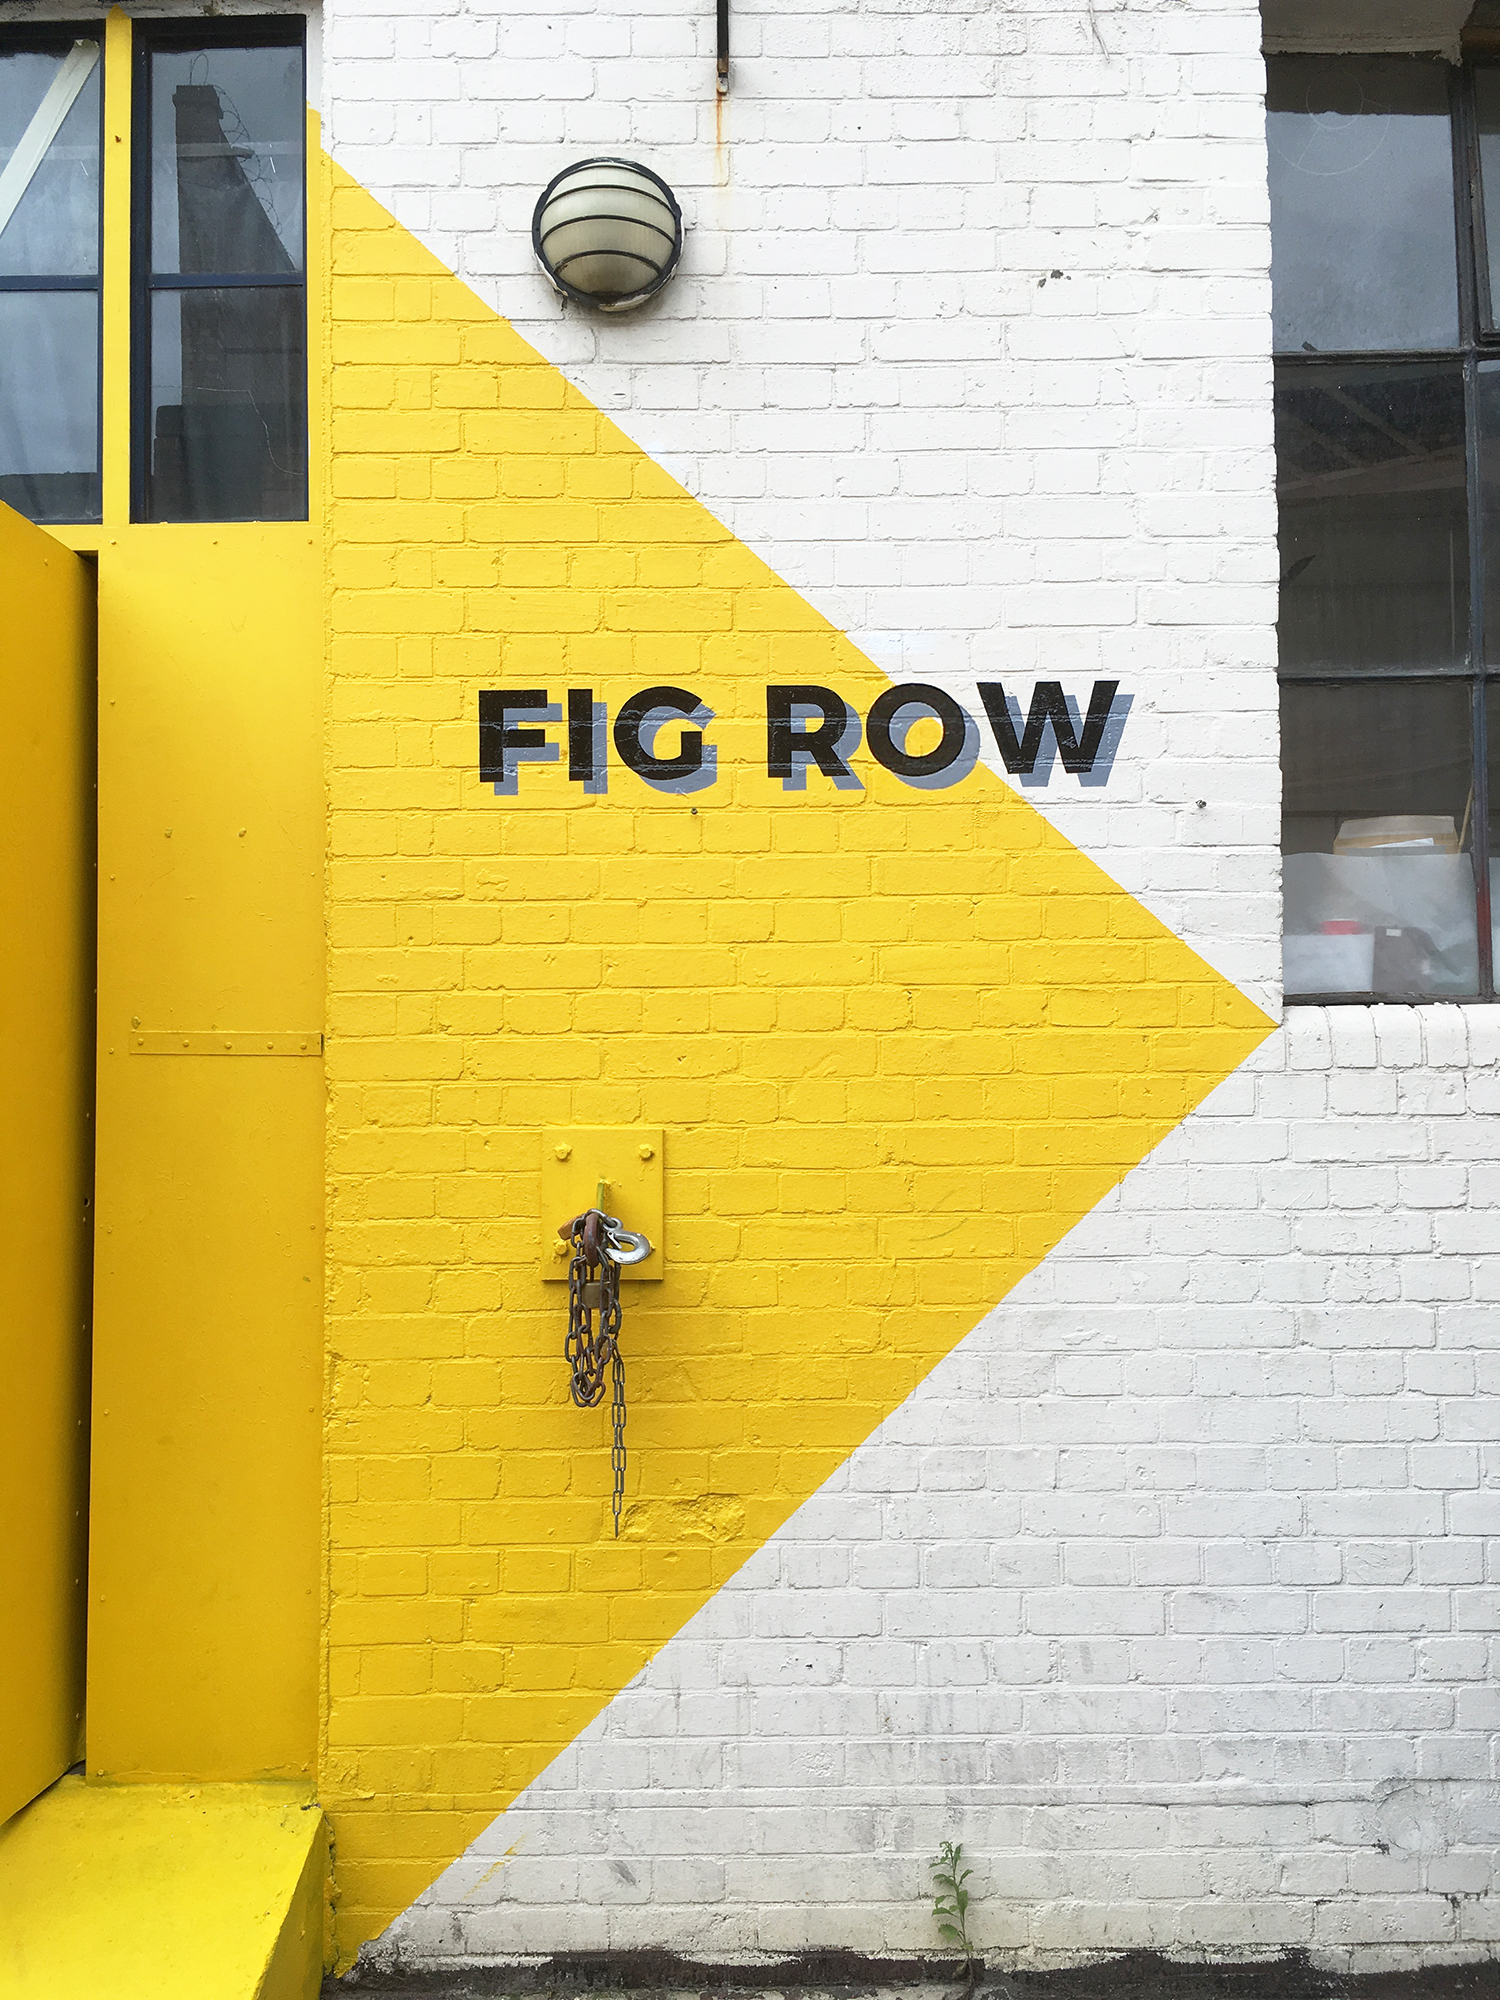 MOLU_FIG ROW 10.jpg